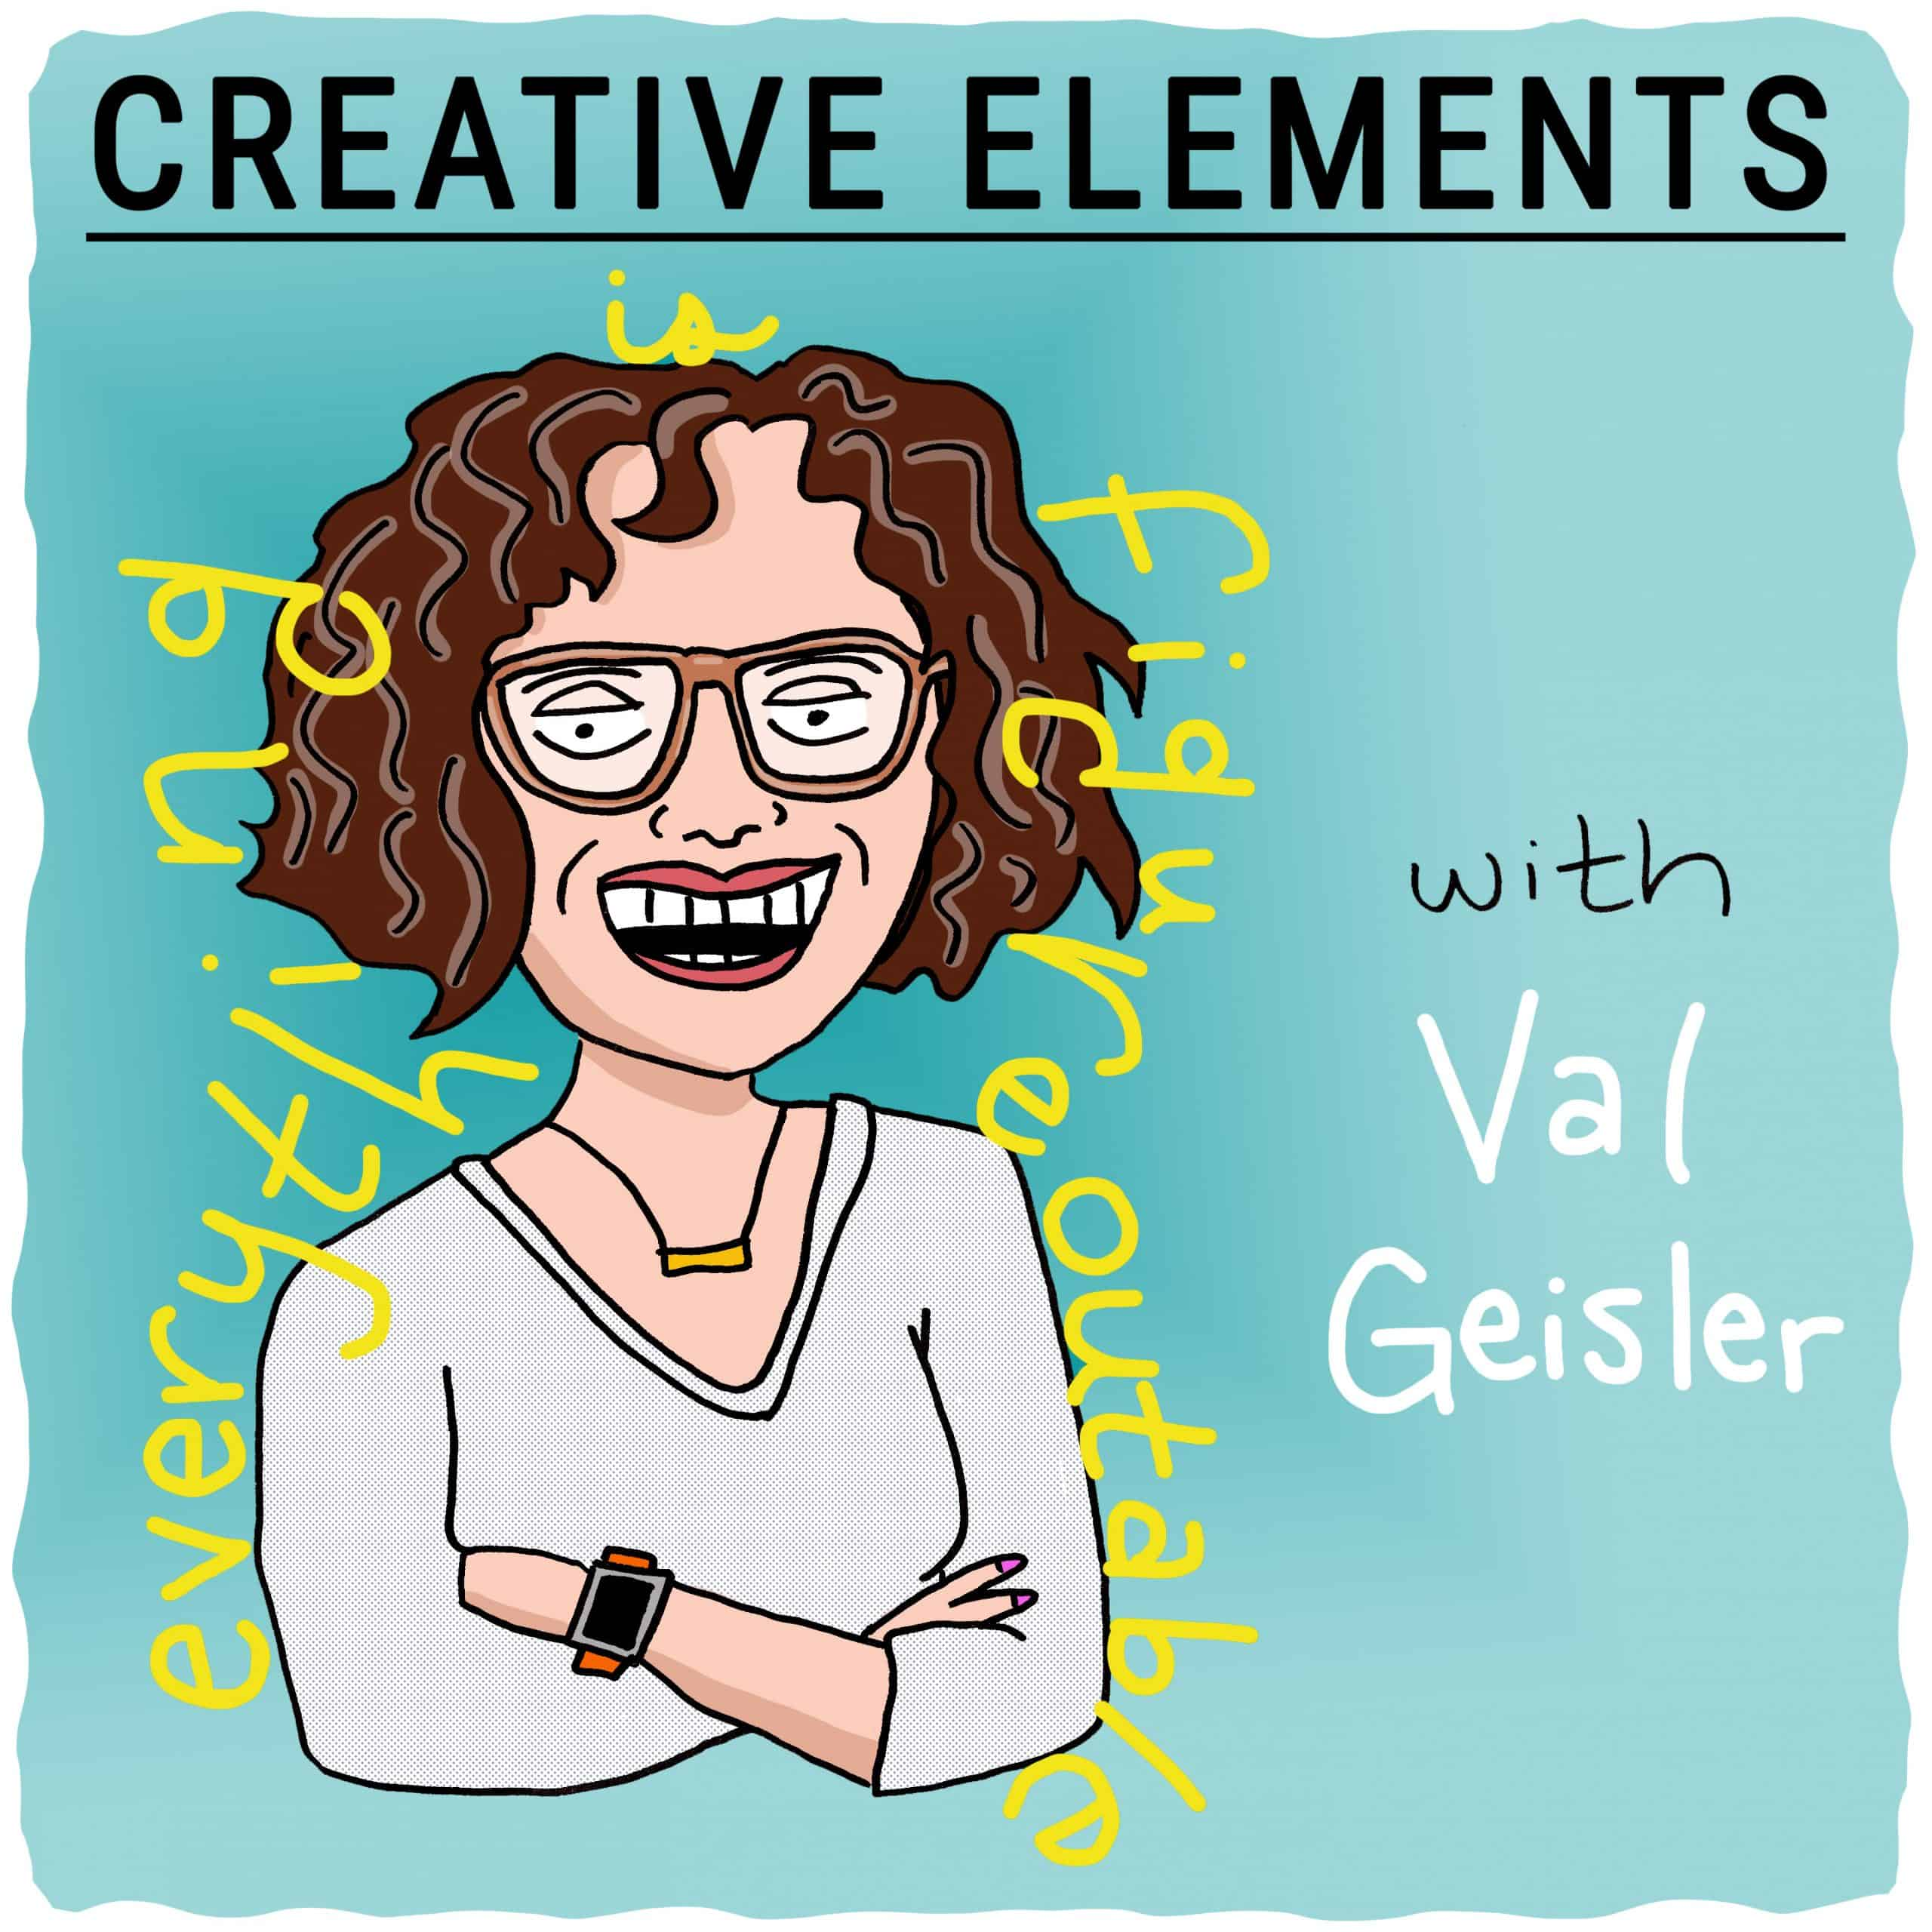 Val Geisler on Creative Elements